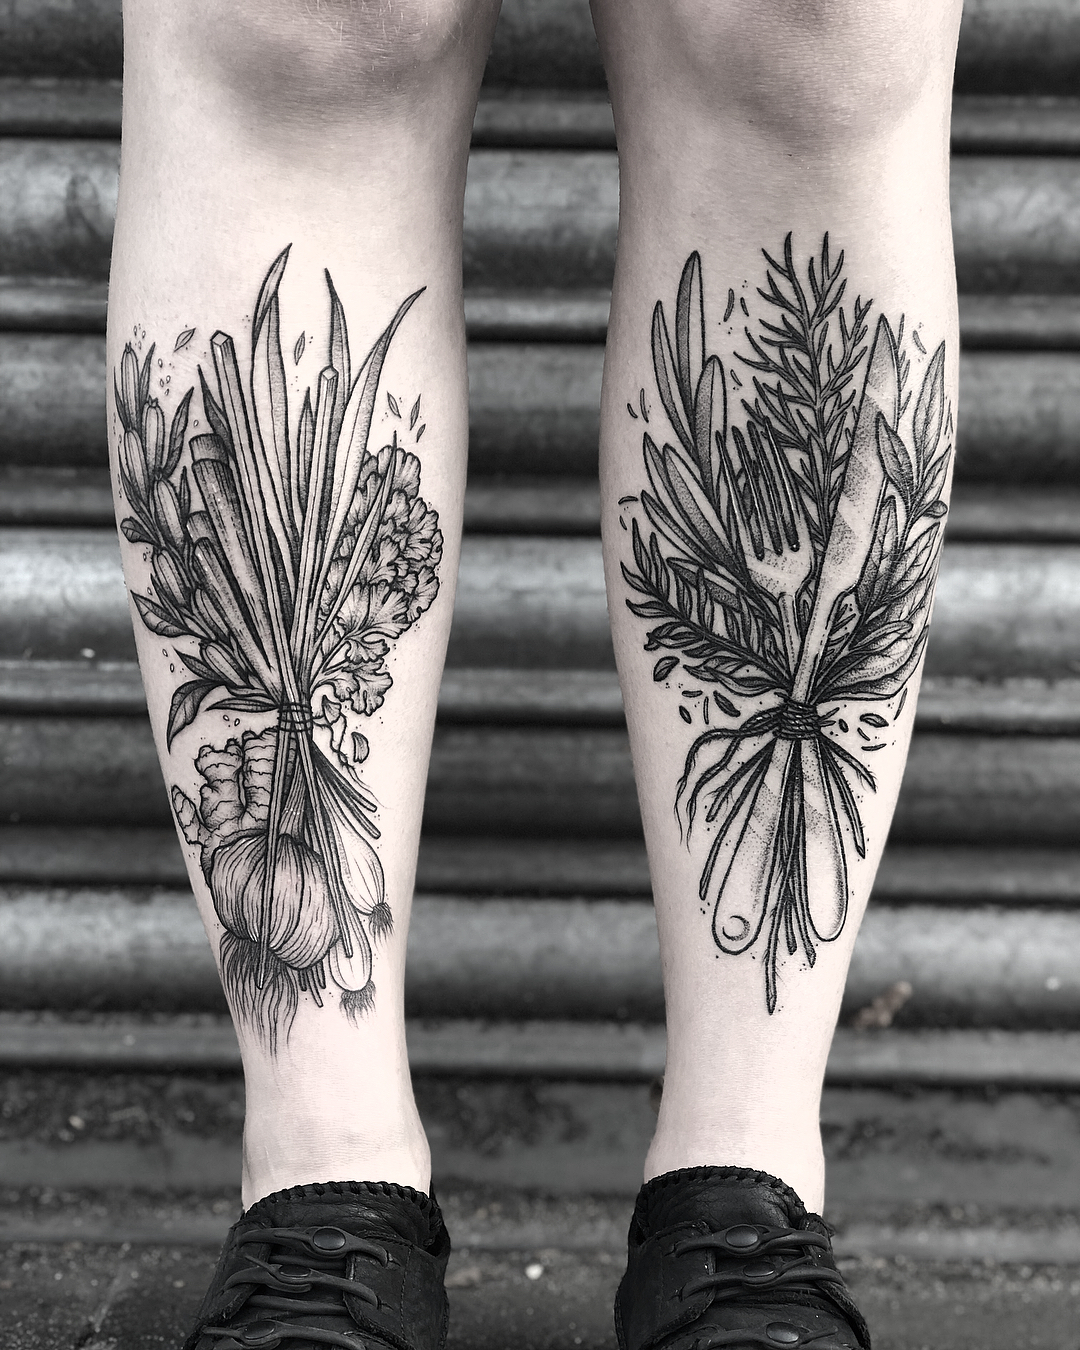 Chinese herbs garlic, spring onion, and sesam by Lozzy Bones Tattoo